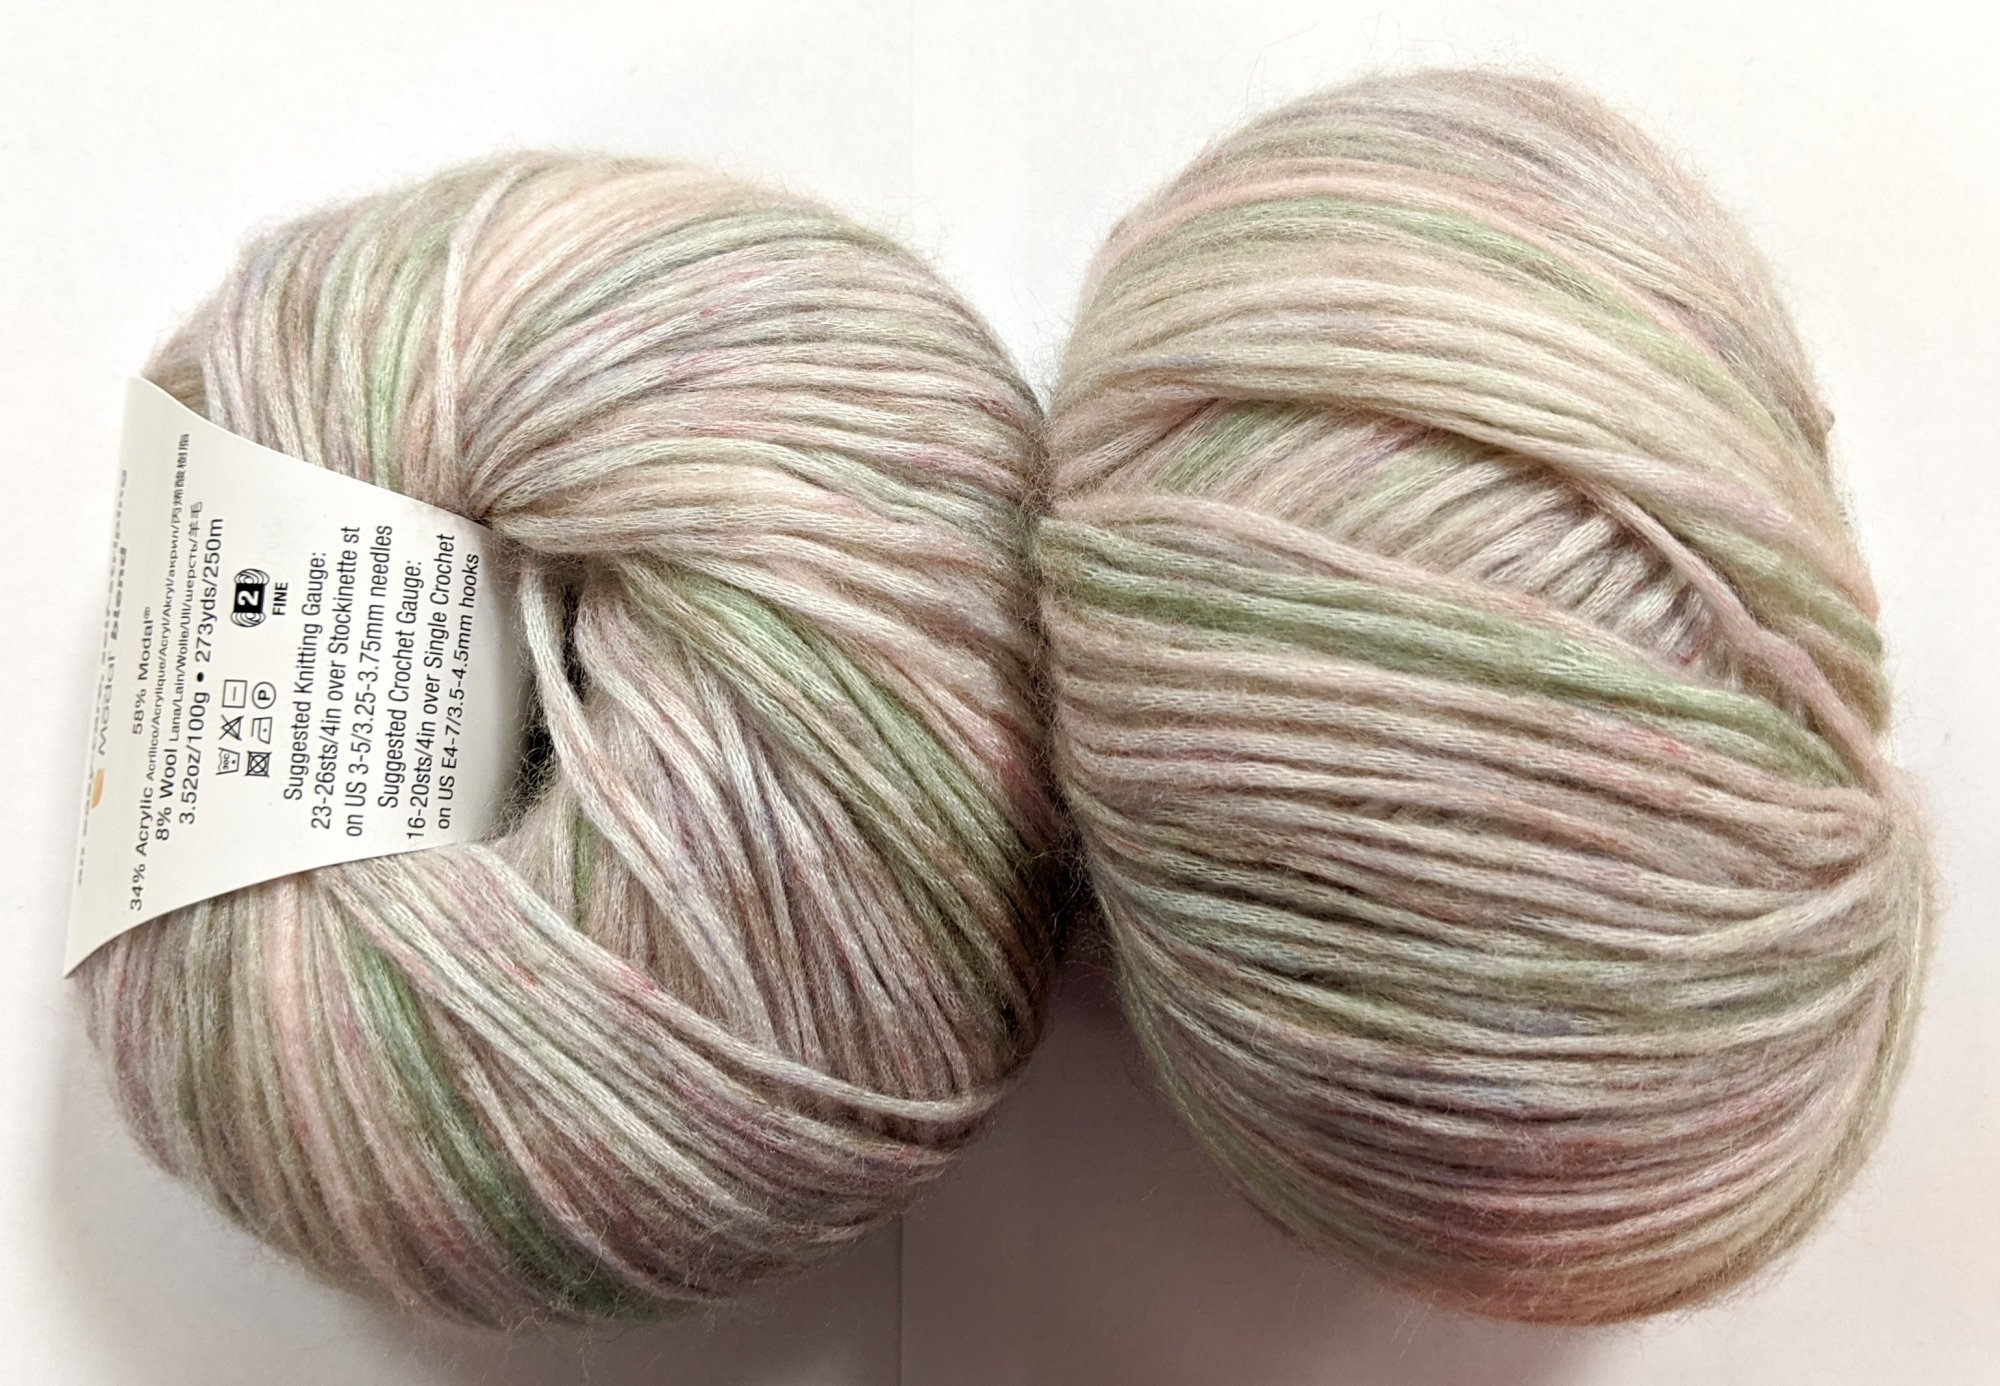 Knitting Fever Painted Mist Yarn - Prismatic Pearl #311 - disc